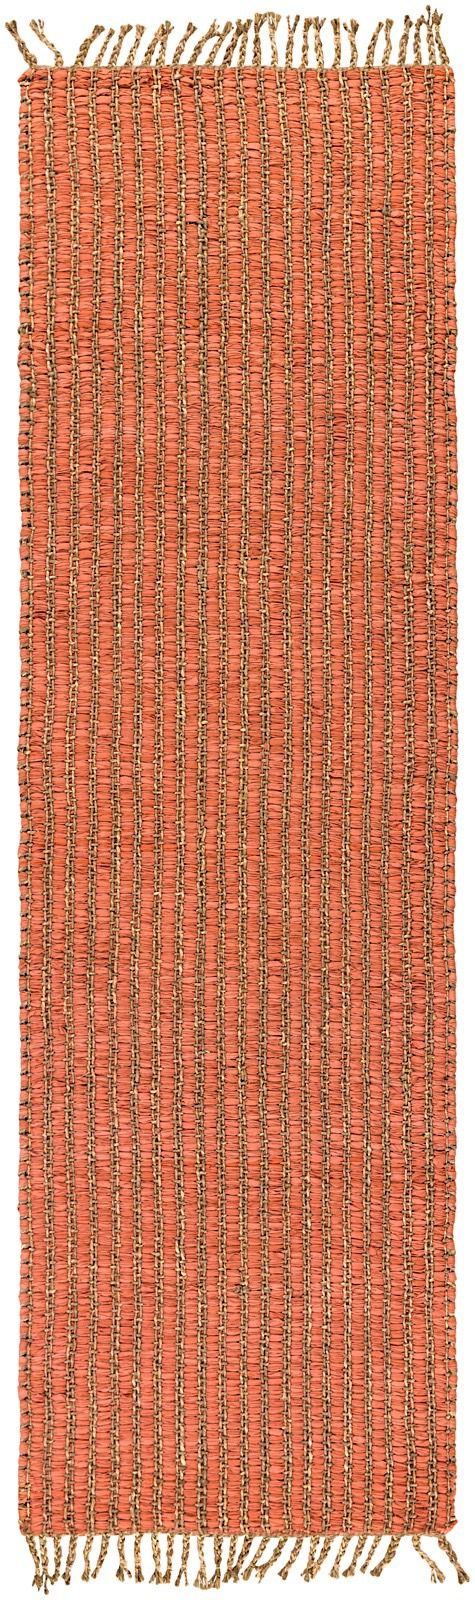 surya kailani natural fiber area rug collection